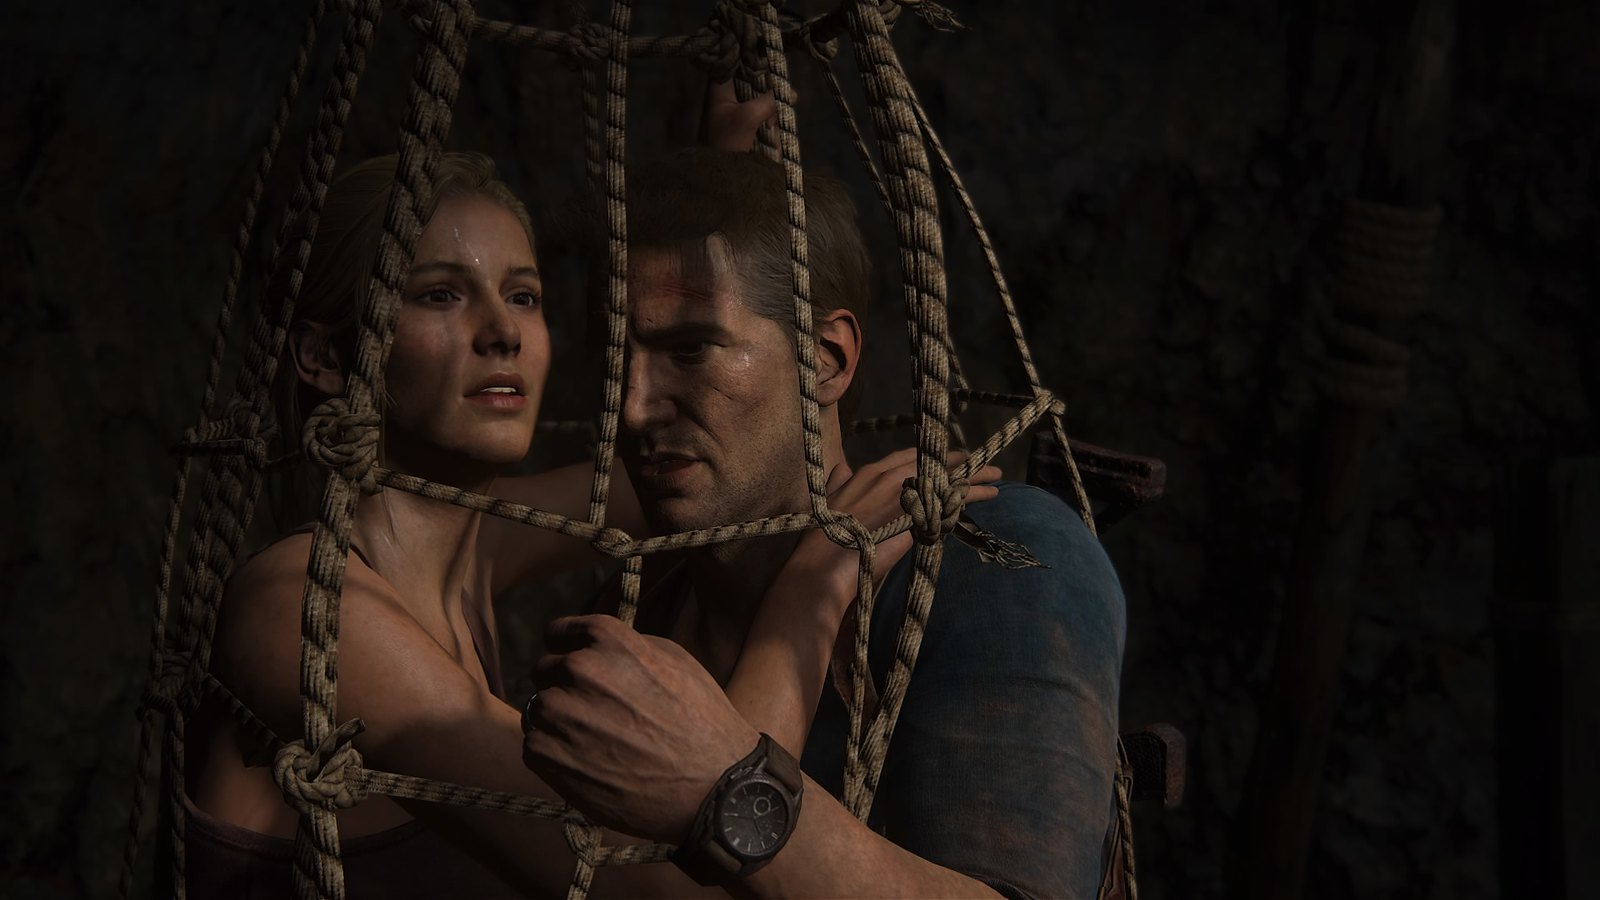 uncharted4_screenshots_by_spicymeatballz_0367